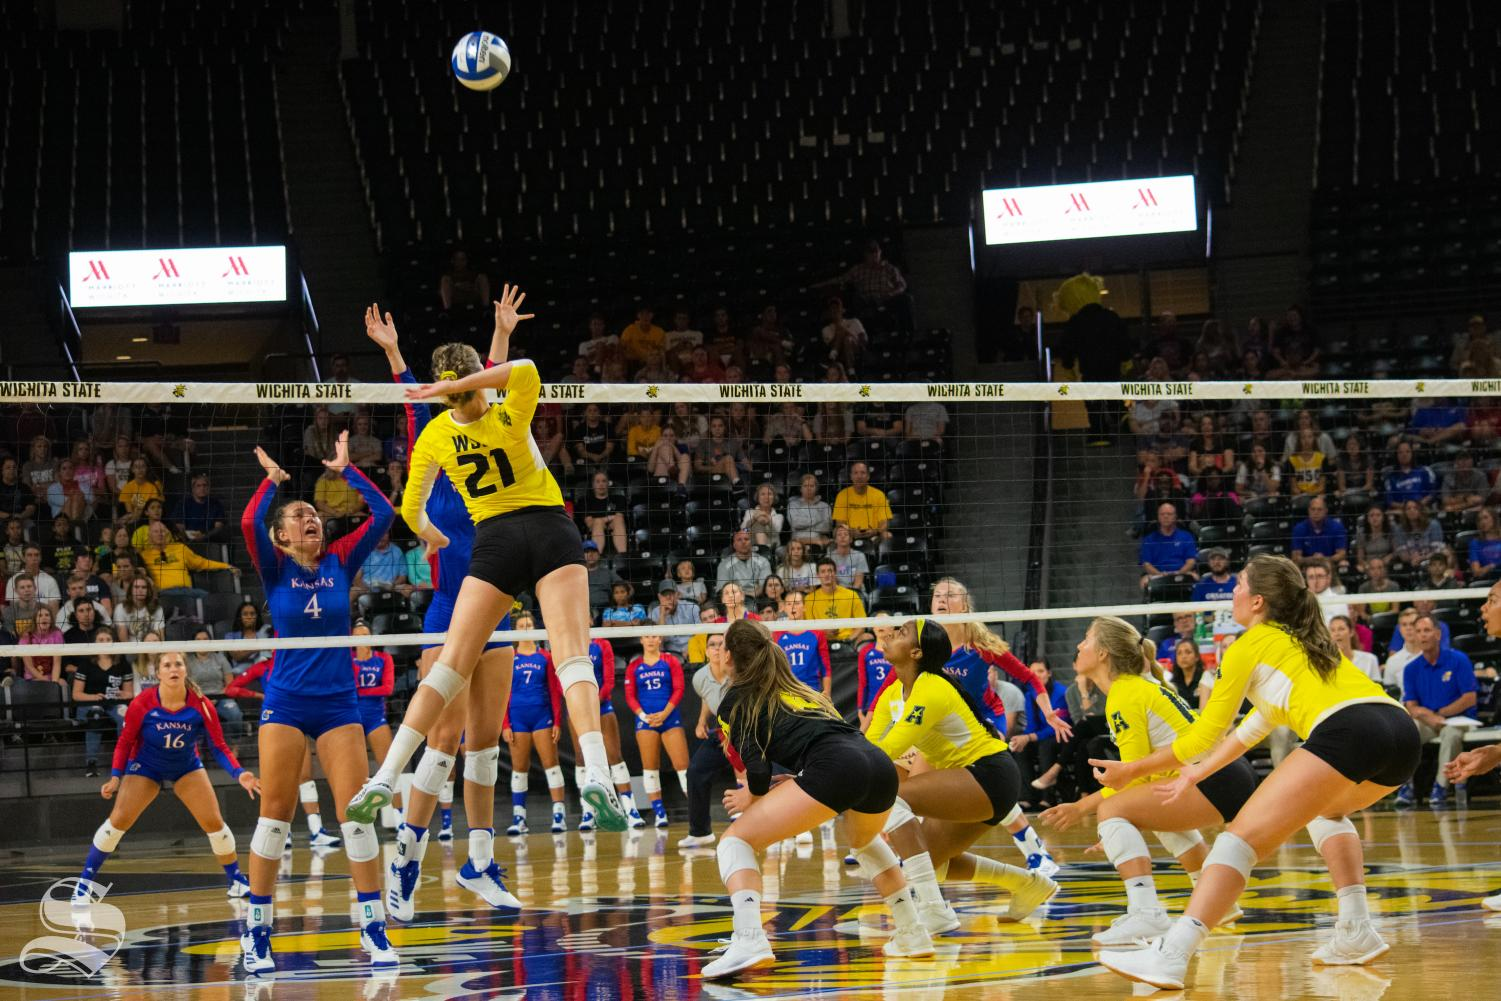 Wichita State sophomore Megan Taflinger goes up for a kill during Saturday's exhibition match against Kansas inside Charles Koch Arena.